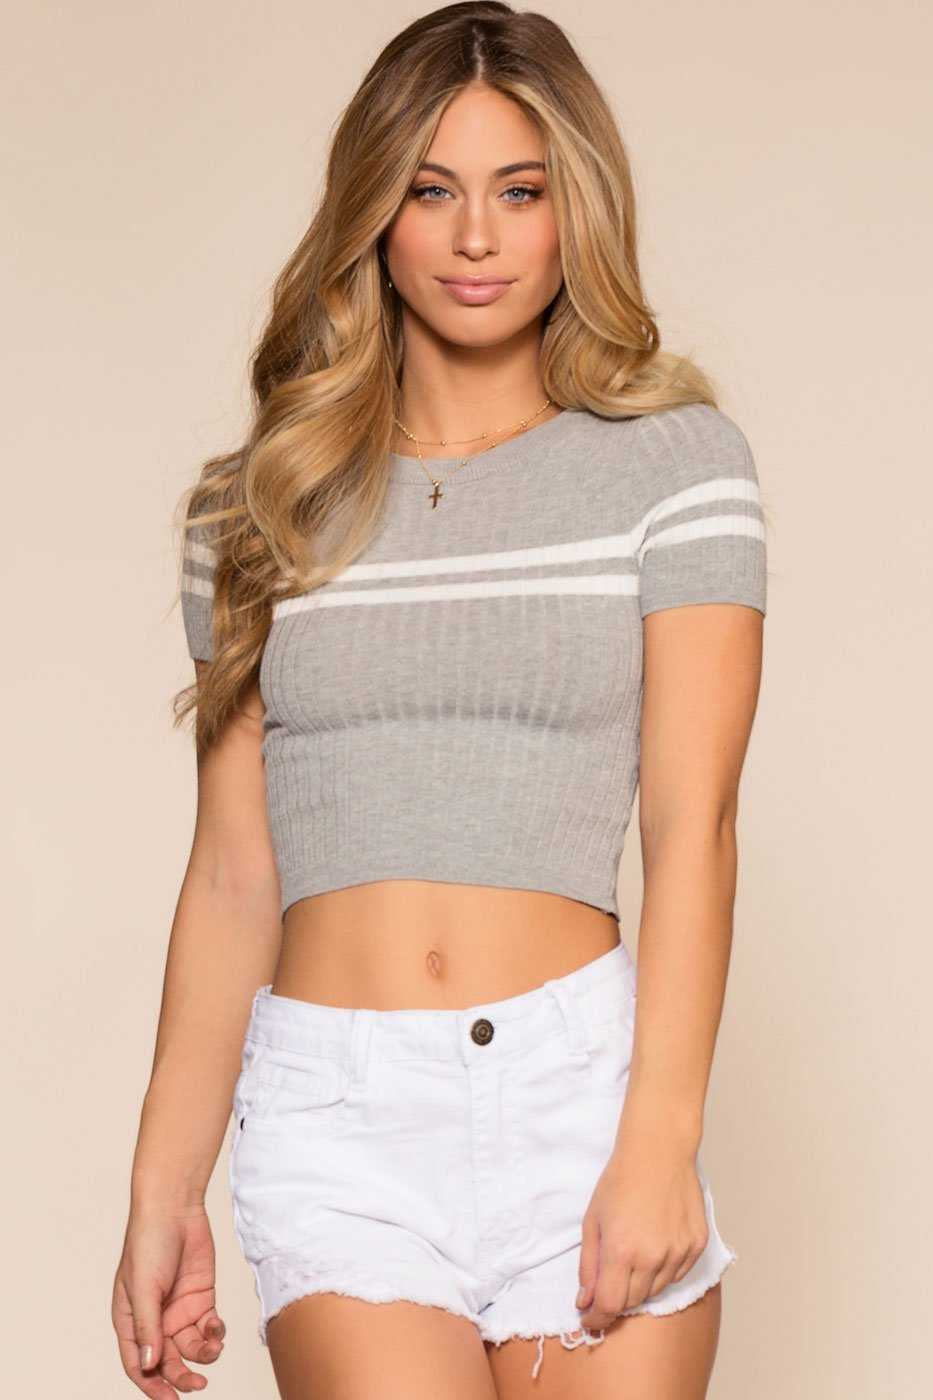 Sheree Knit Crop Top Gray Shop Priceless